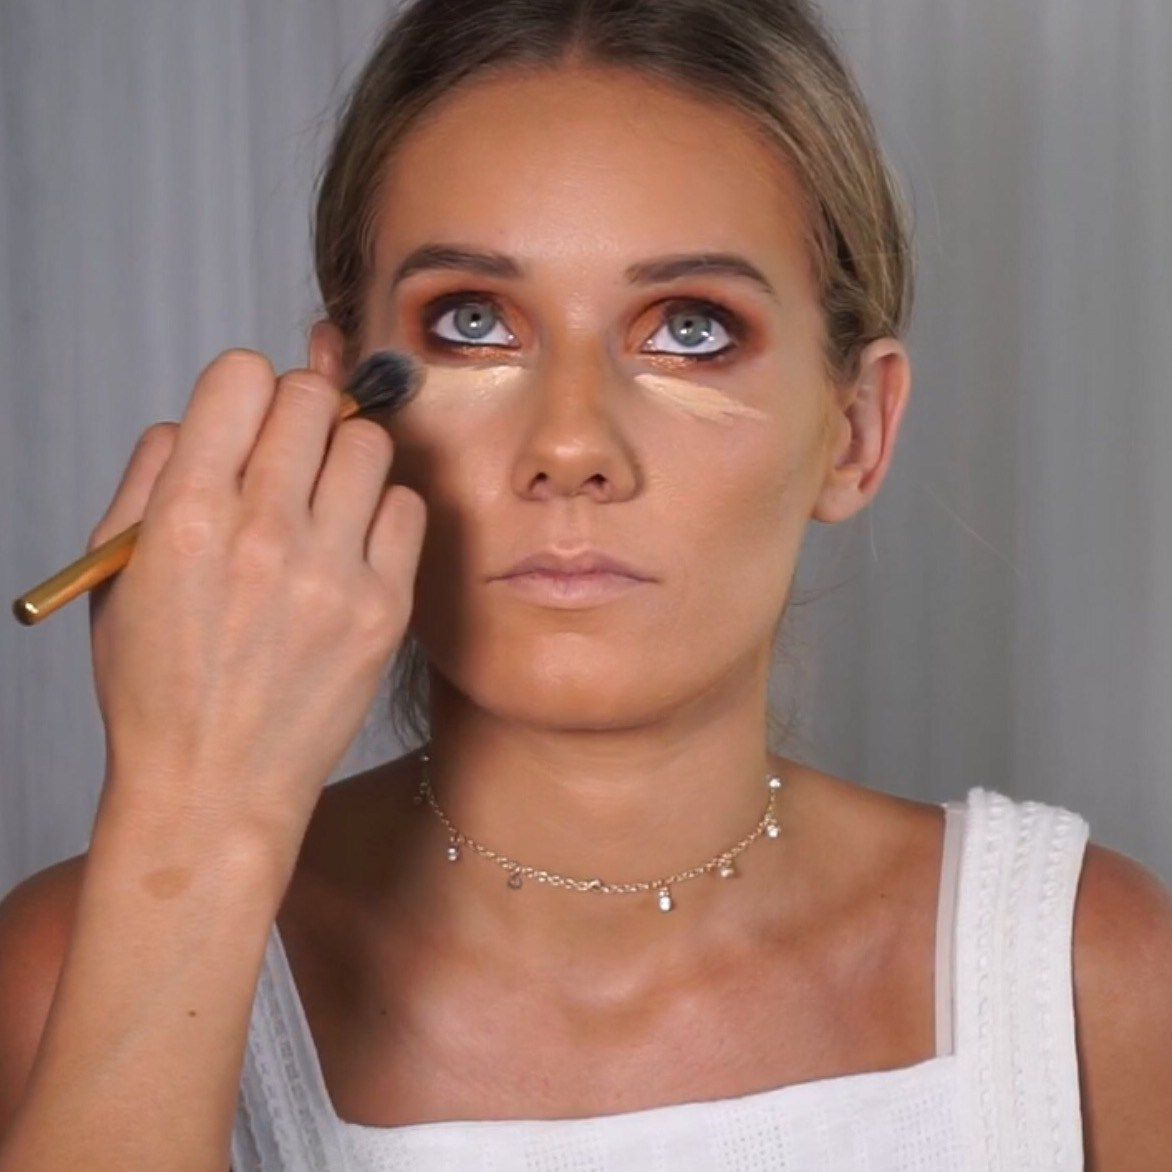 How to Avoid UnderEye Caking and Creasing UnderEyes